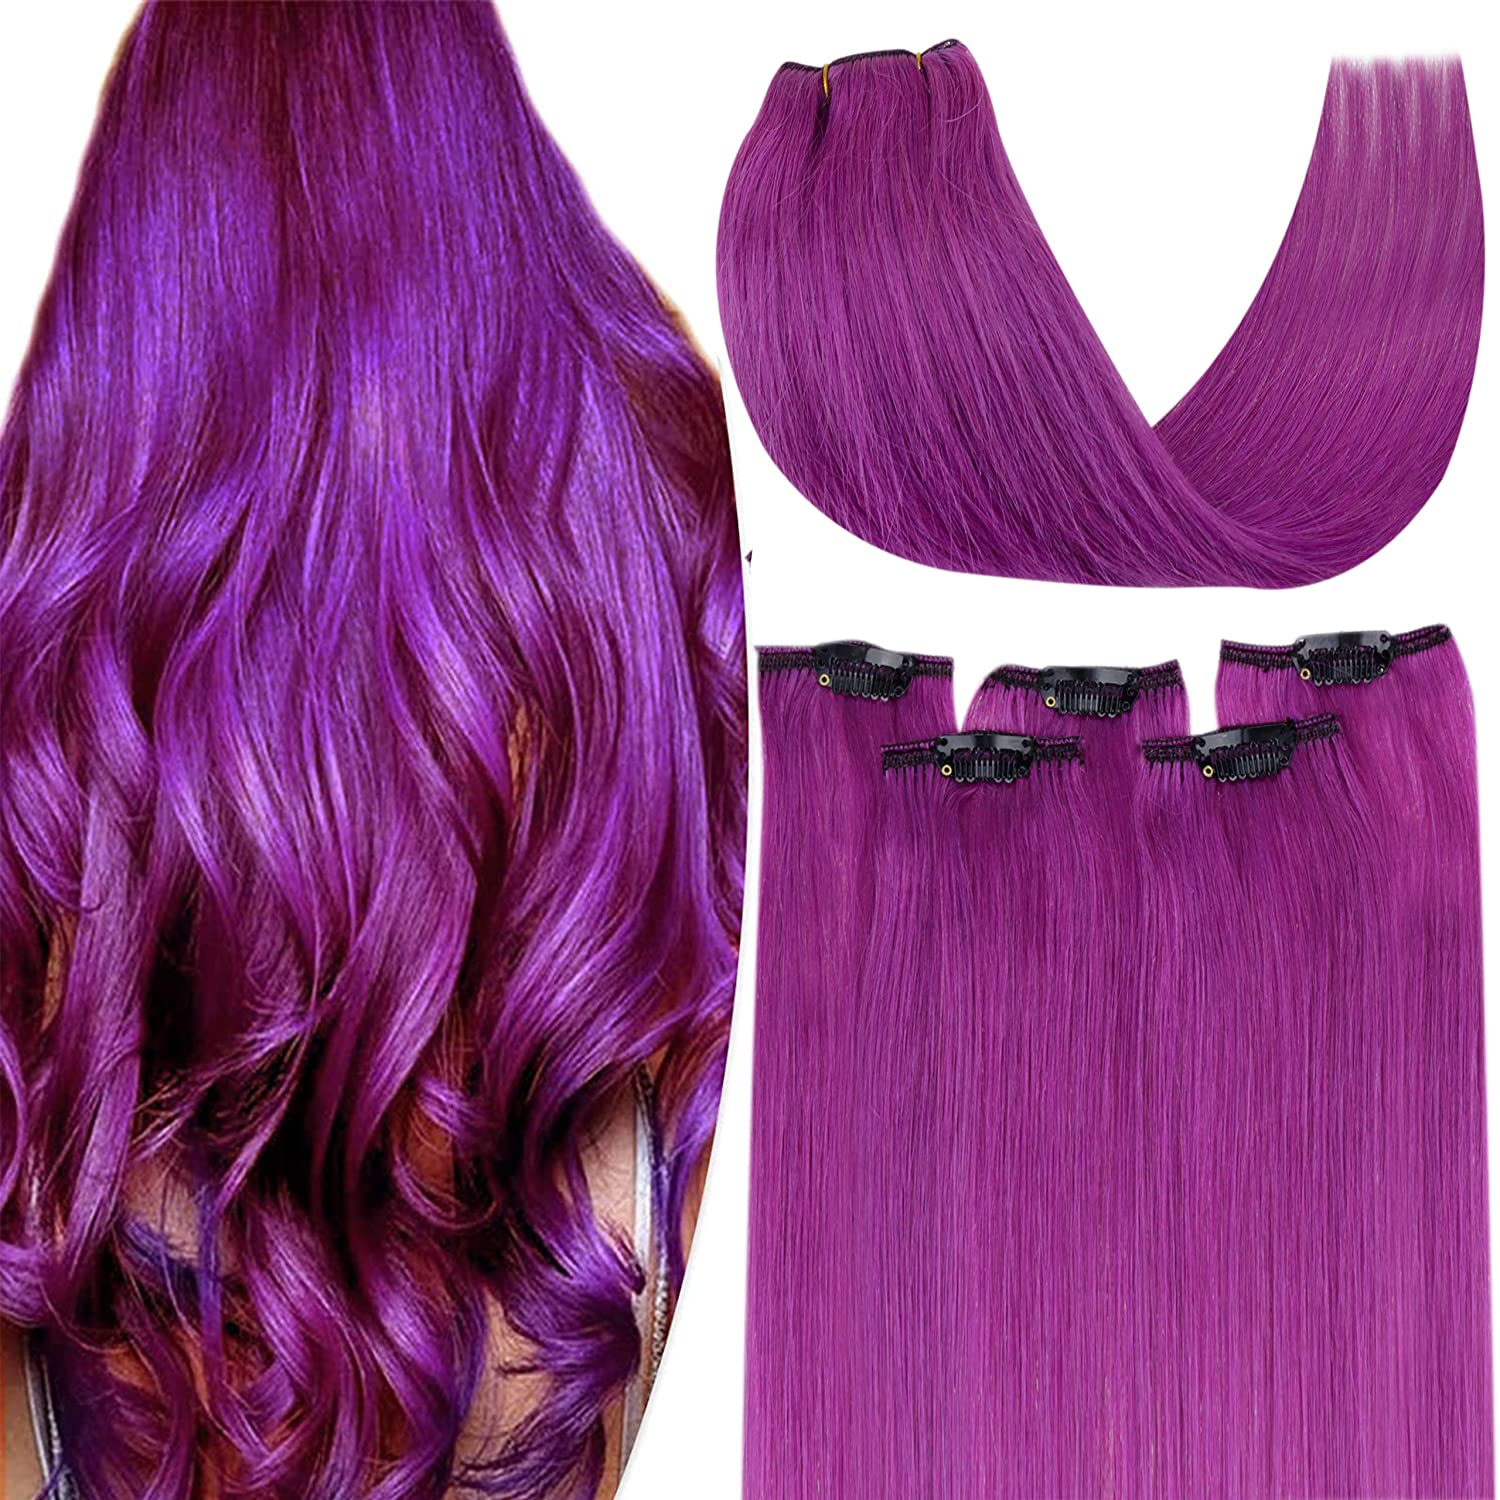 Hetto Attention brand Clip in Hair Extensions Remy Inch #Purp 16 5Pcs Ranking TOP1 Human